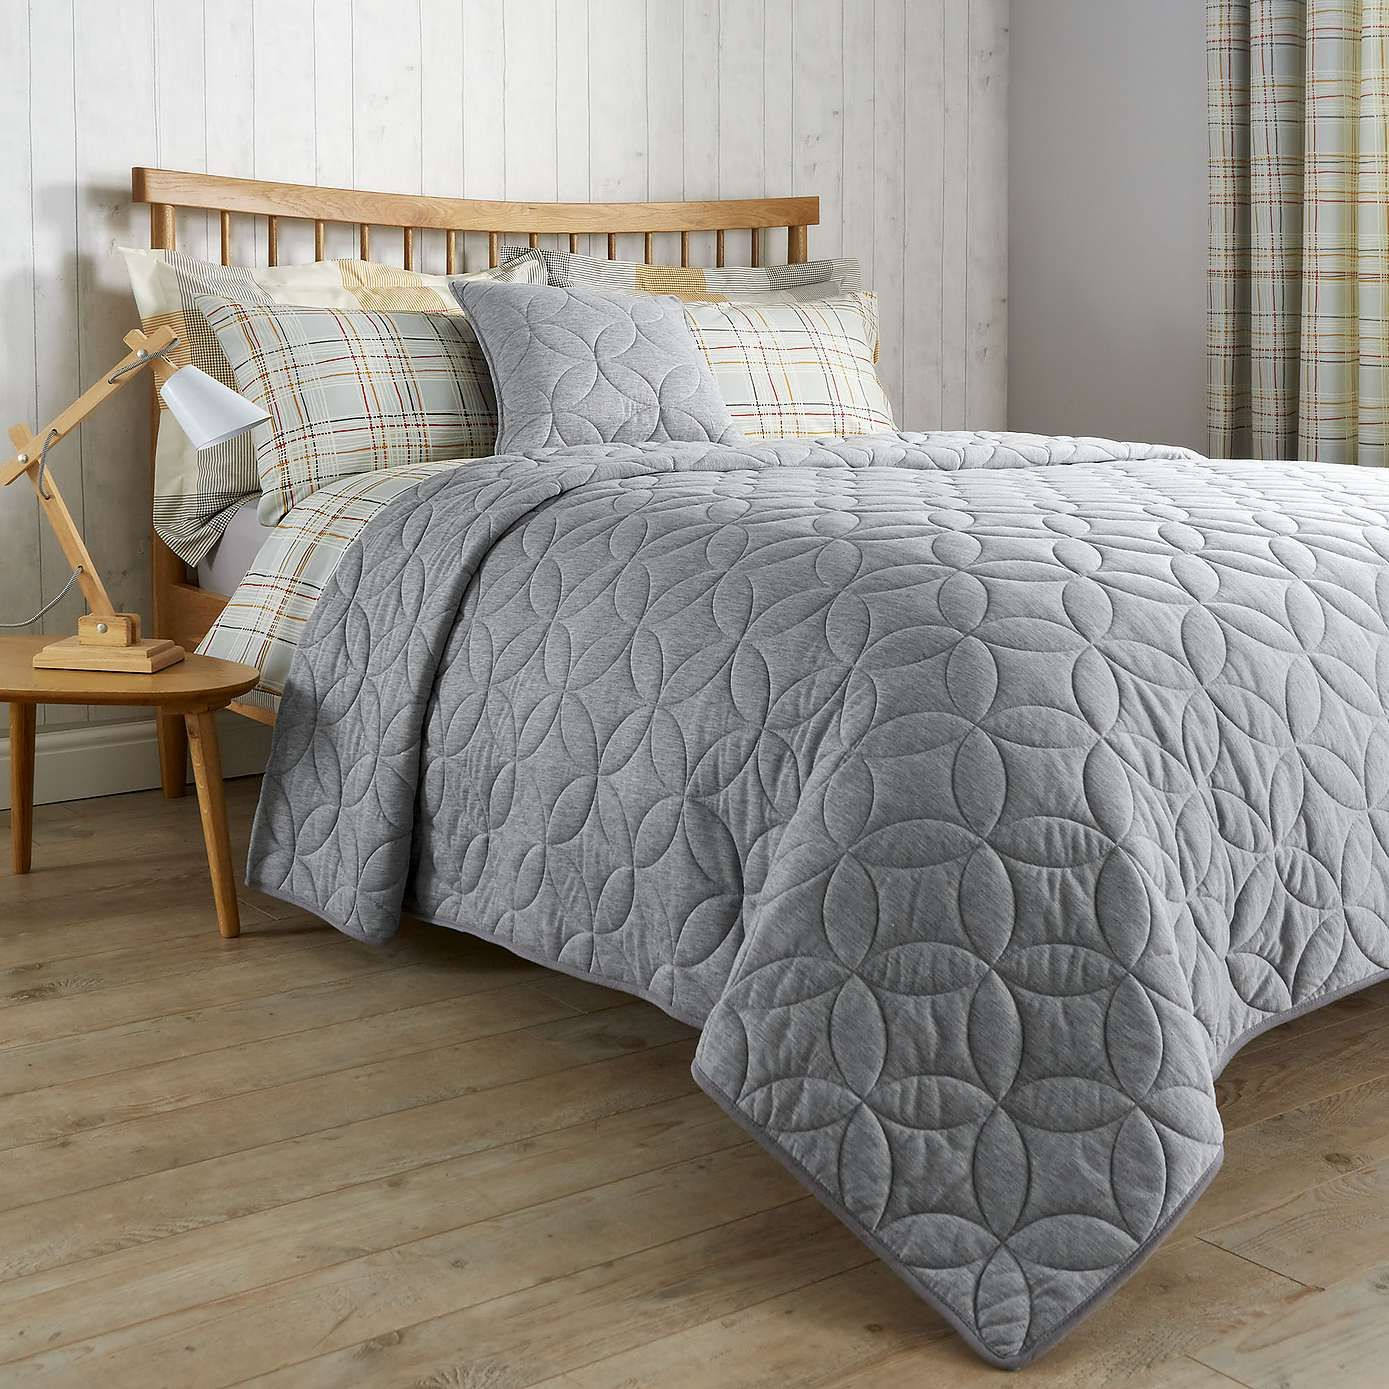 Elements Grey Quilted Bedspread Dunelm Bed Spreads Quilted Master Bedroom